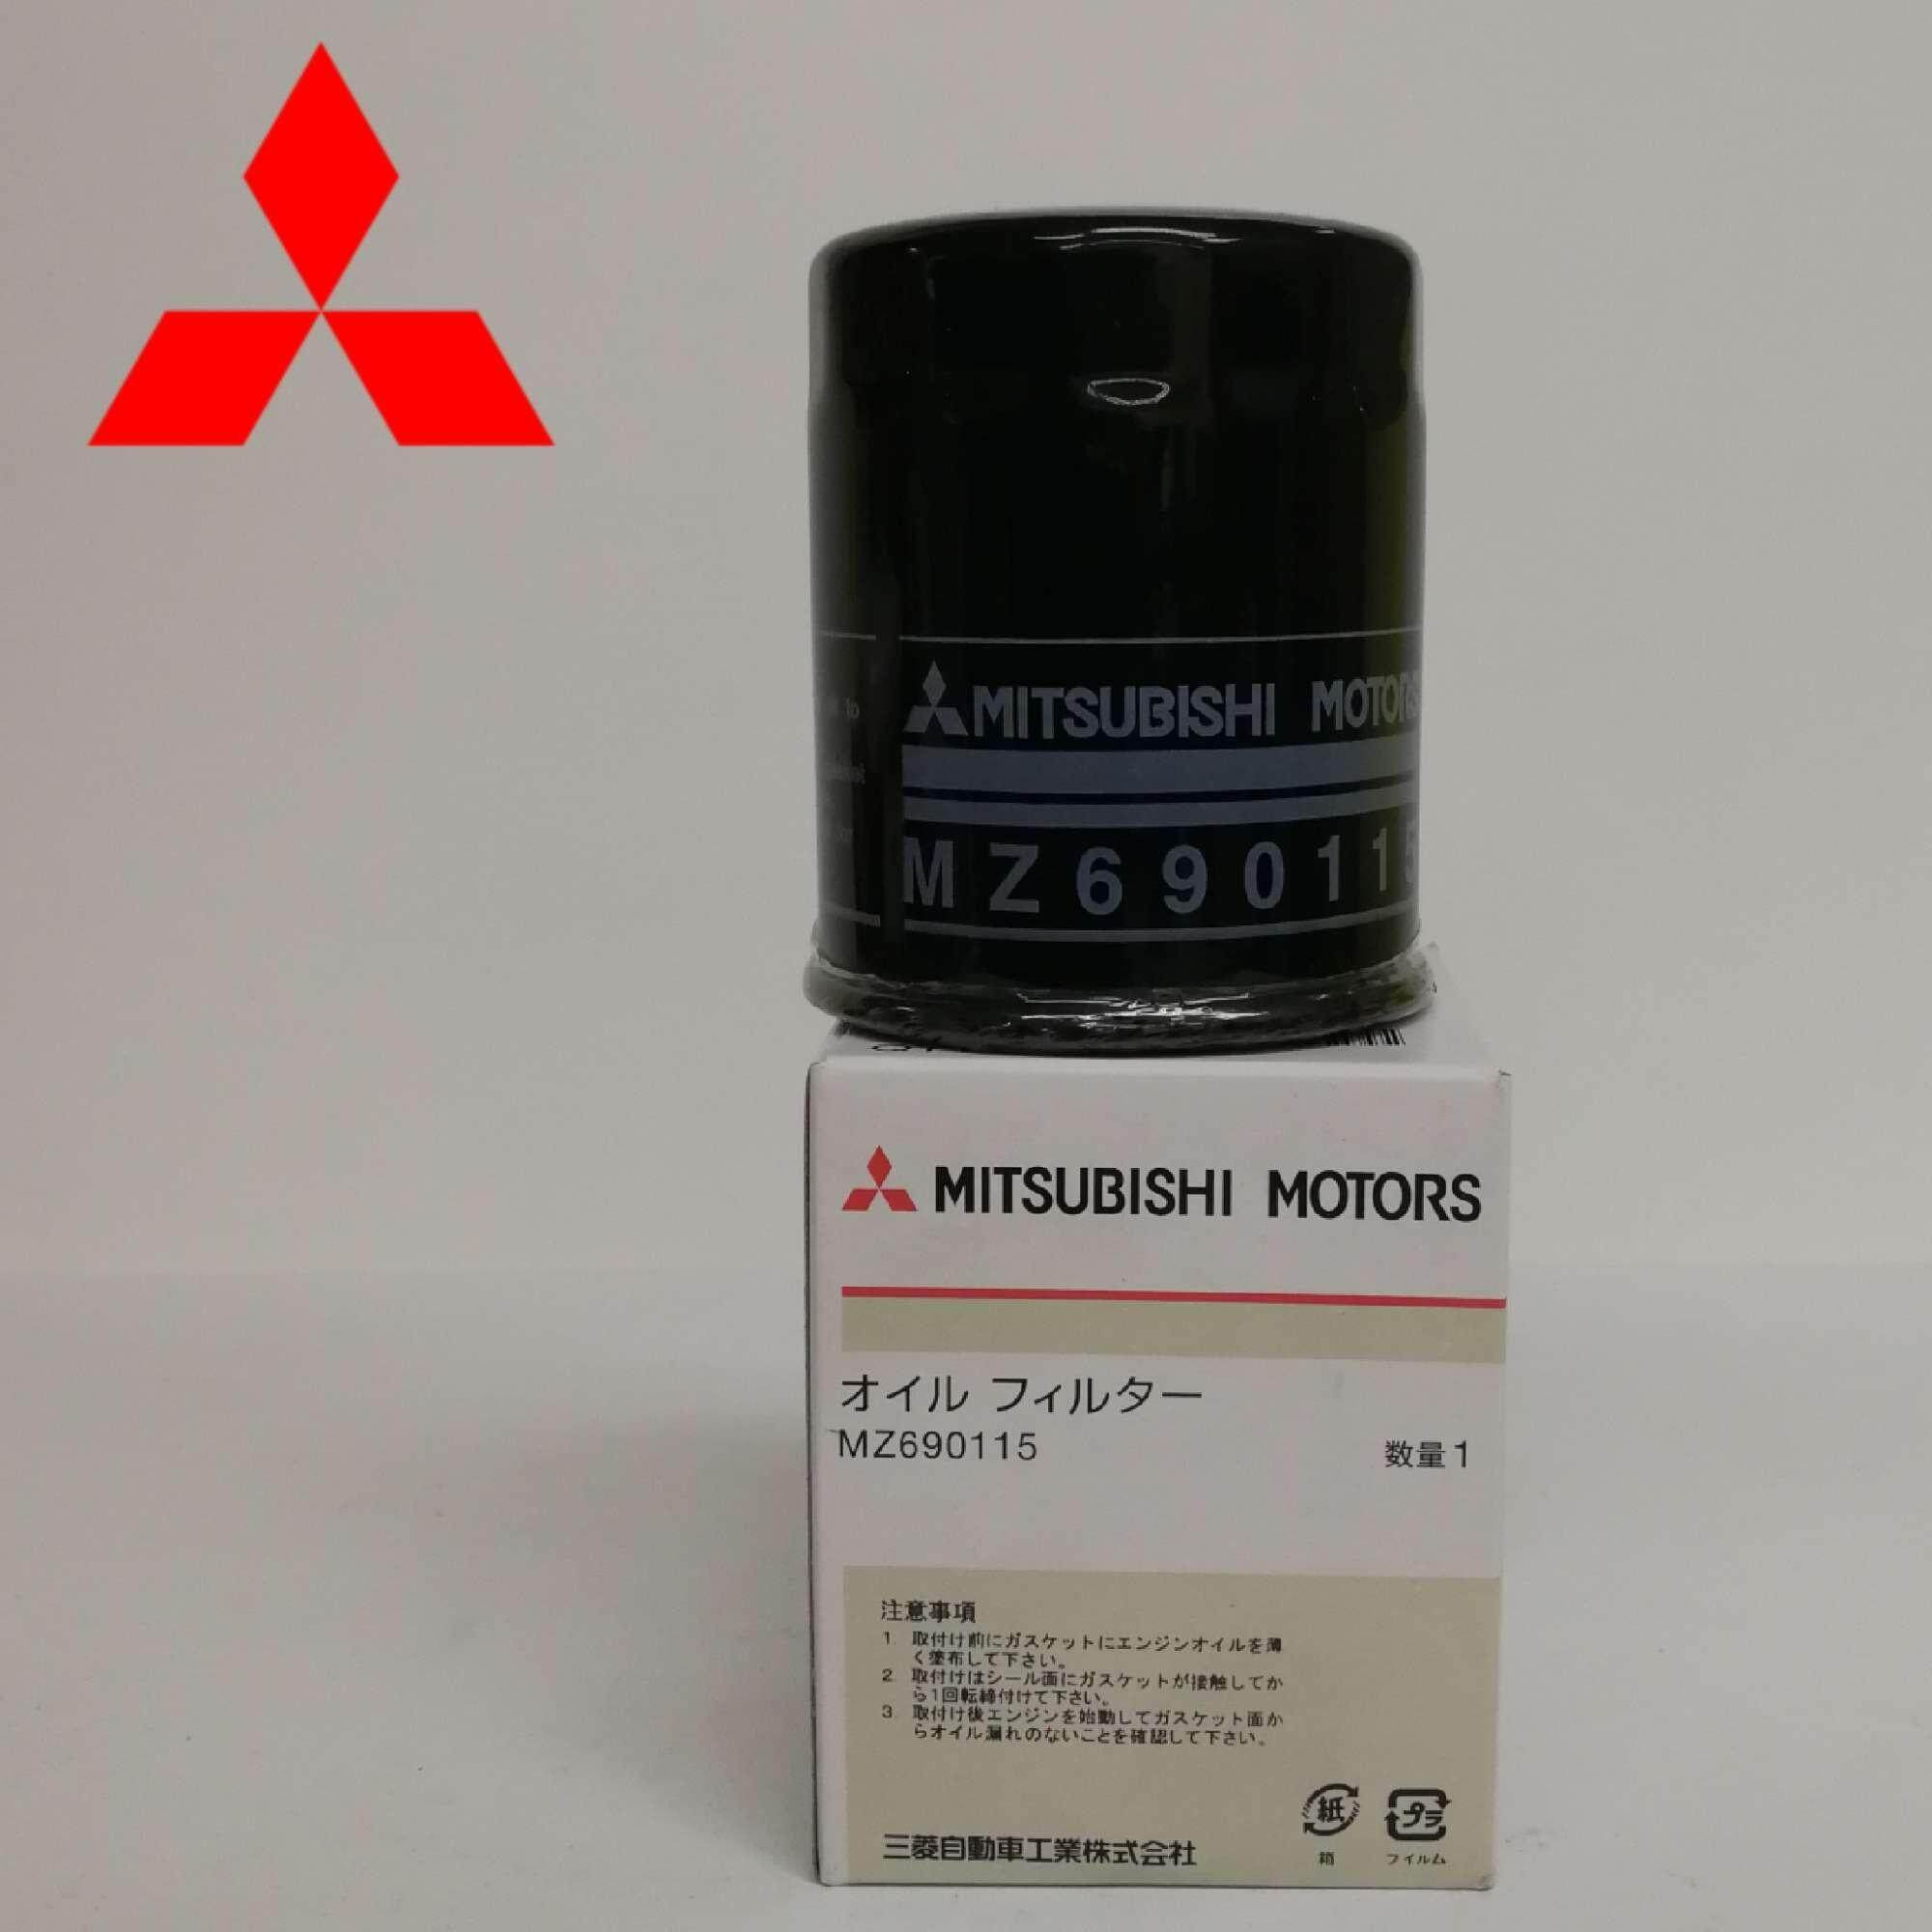 Mitsubishi Auto Parts Spares Price In Malaysia Best 2001 Galant Ac Drain Oil Filter For Lancer Gt Inspira Mirage Grandis